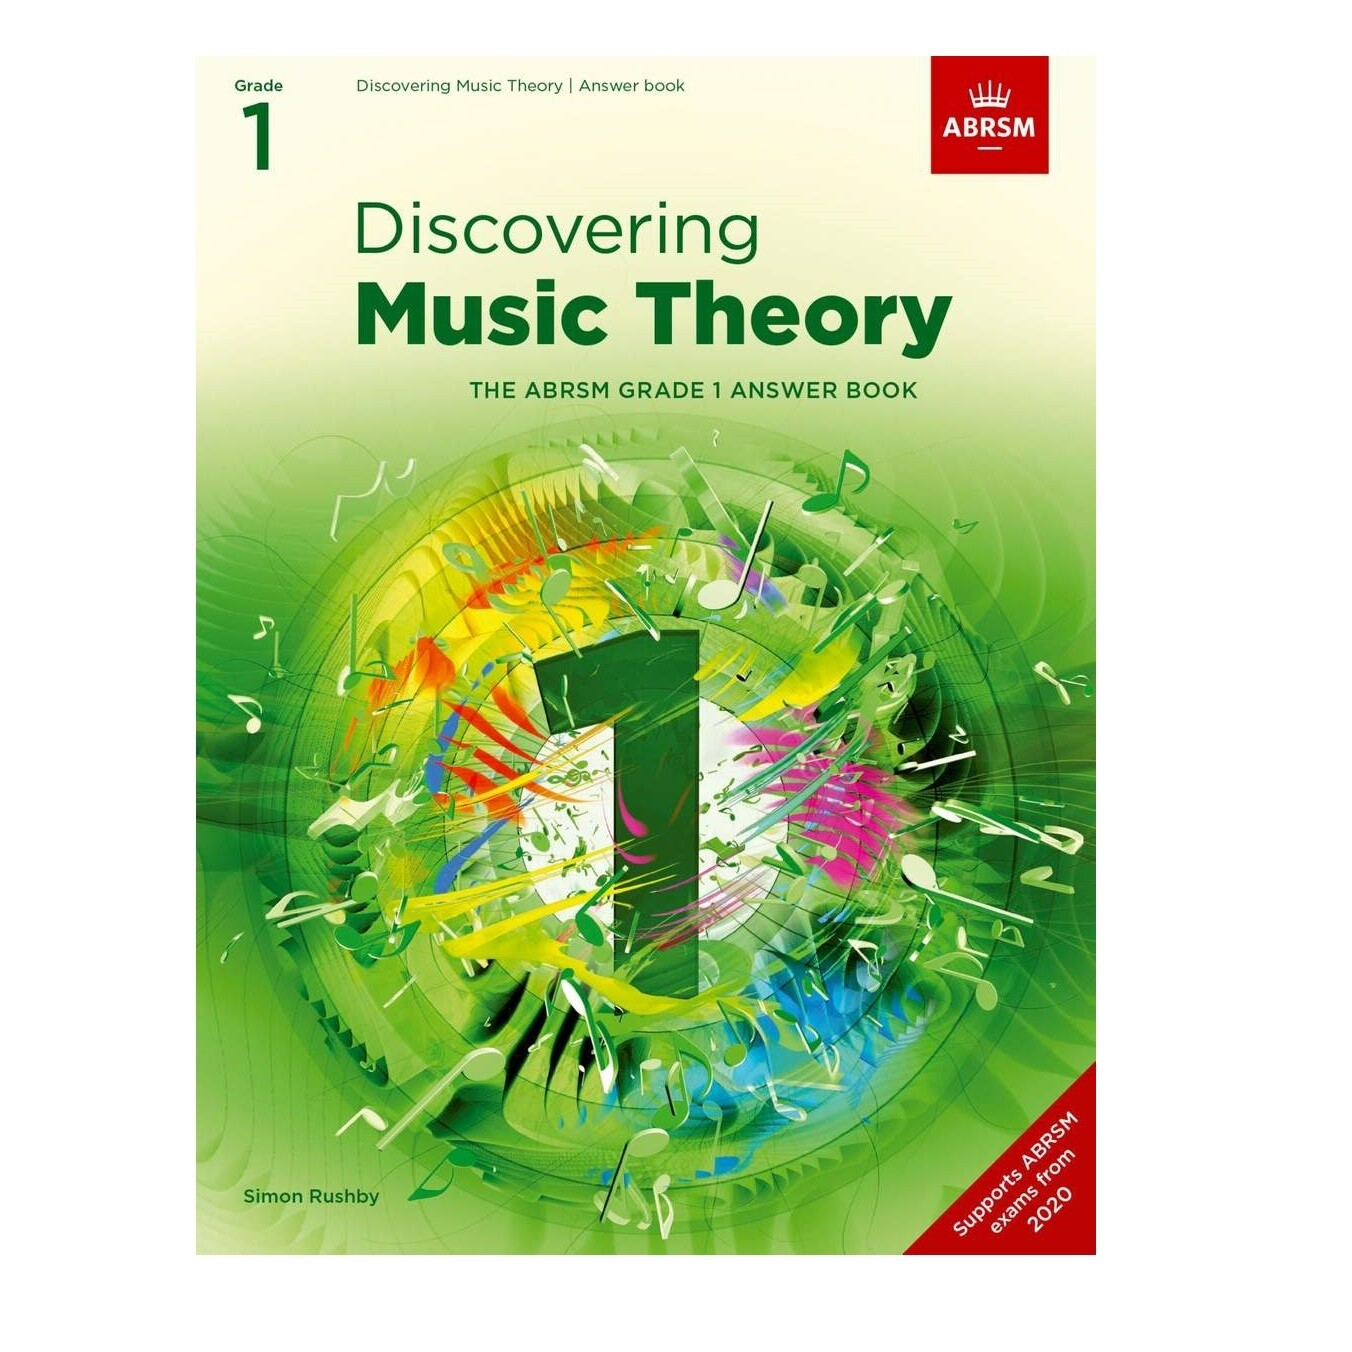 ABRSM Discovering Music Theory Answer Book -  Grade 1